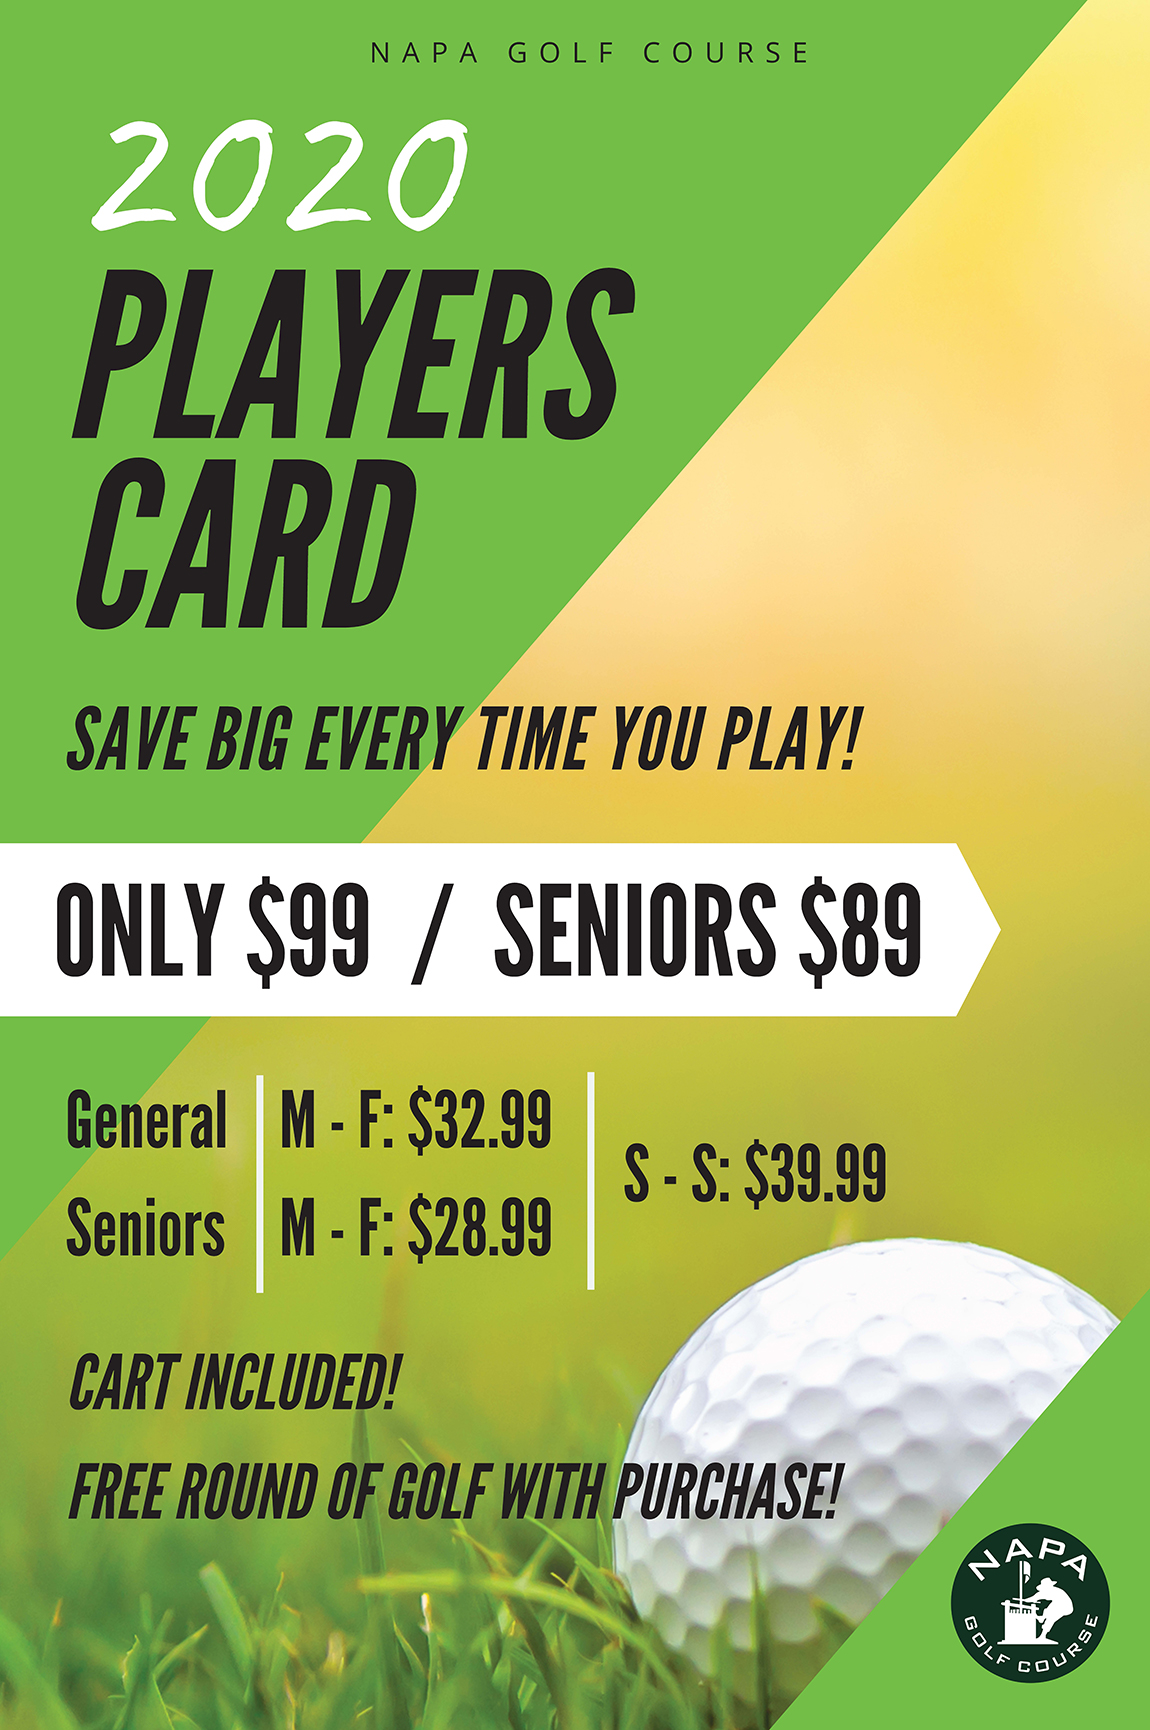 Napa 2020 players club poster p1122h v1a